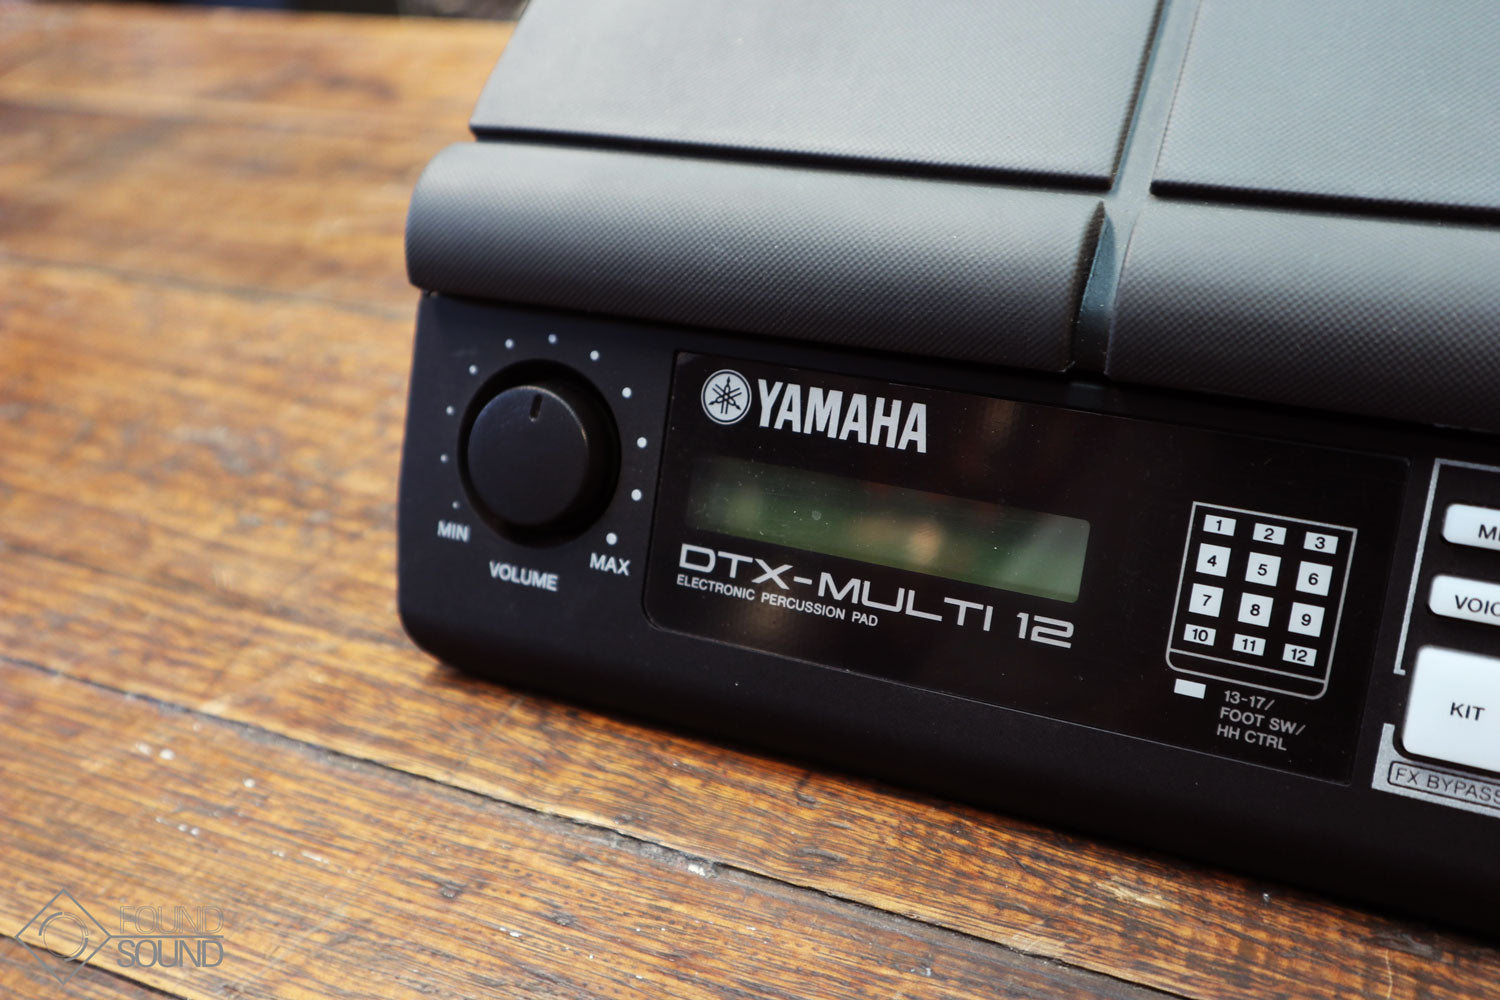 Found Sound Yamaha Dtx Multi 12